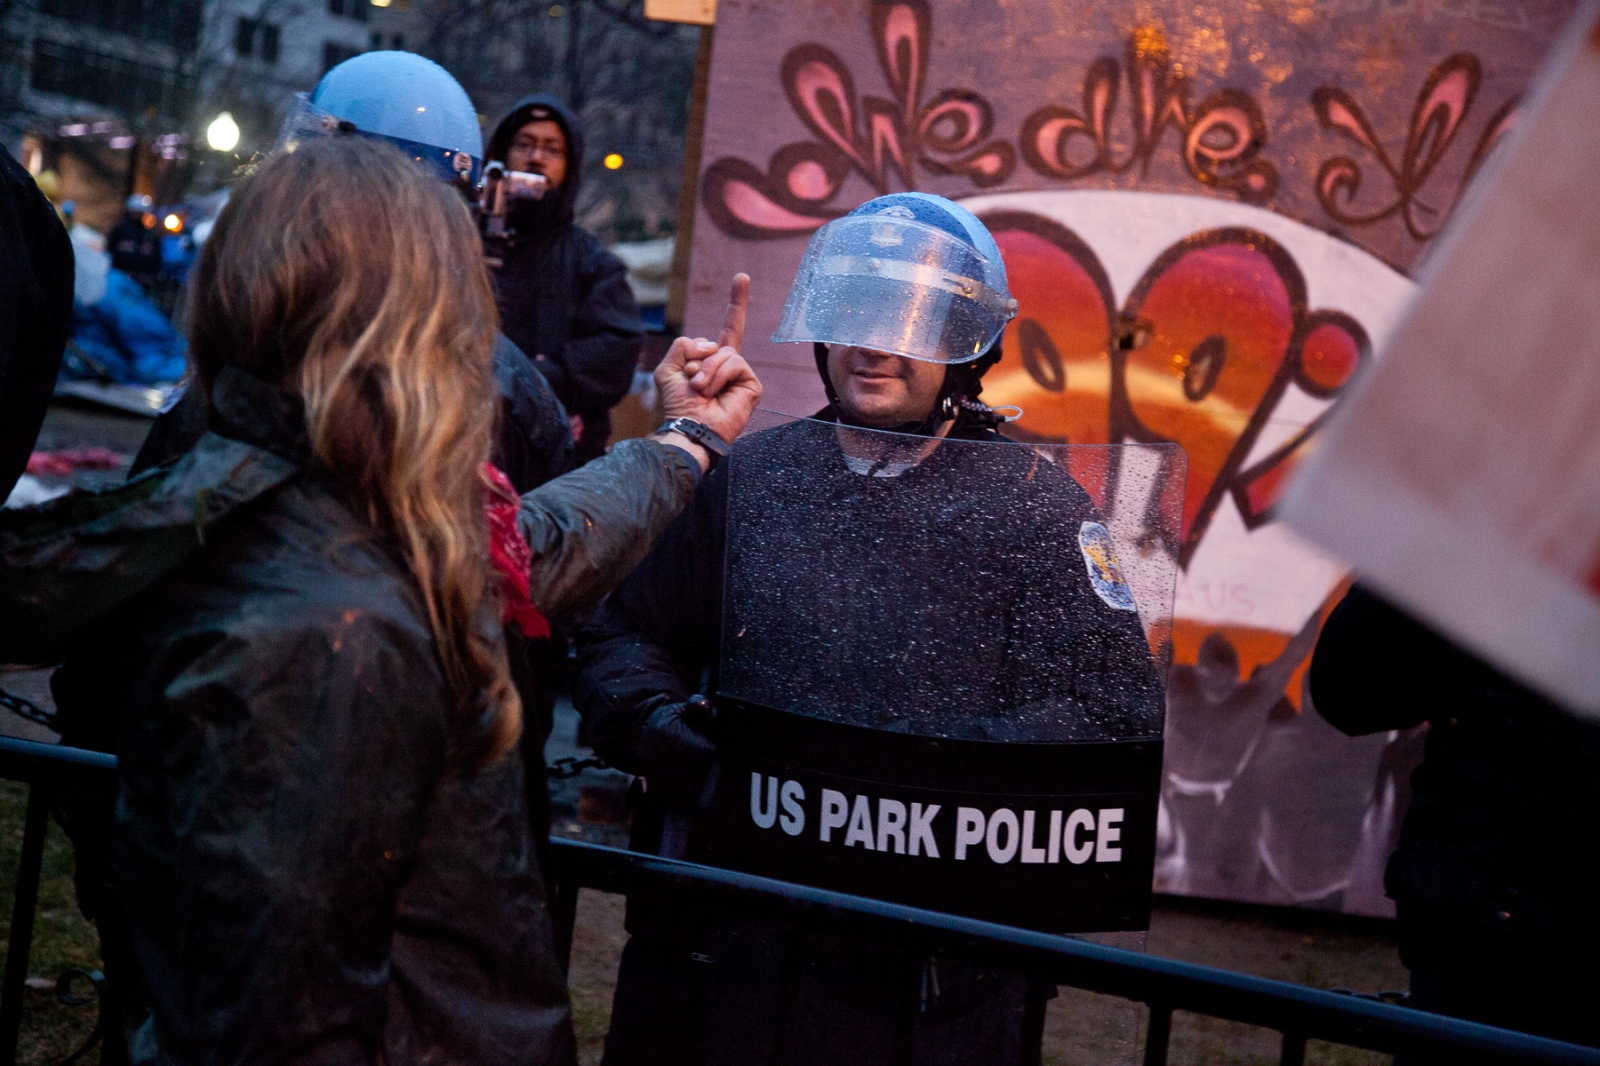 After being evicted from McPherson Square an angry protestor flashes the finger at a U.S. Park Police officer barricading the park.